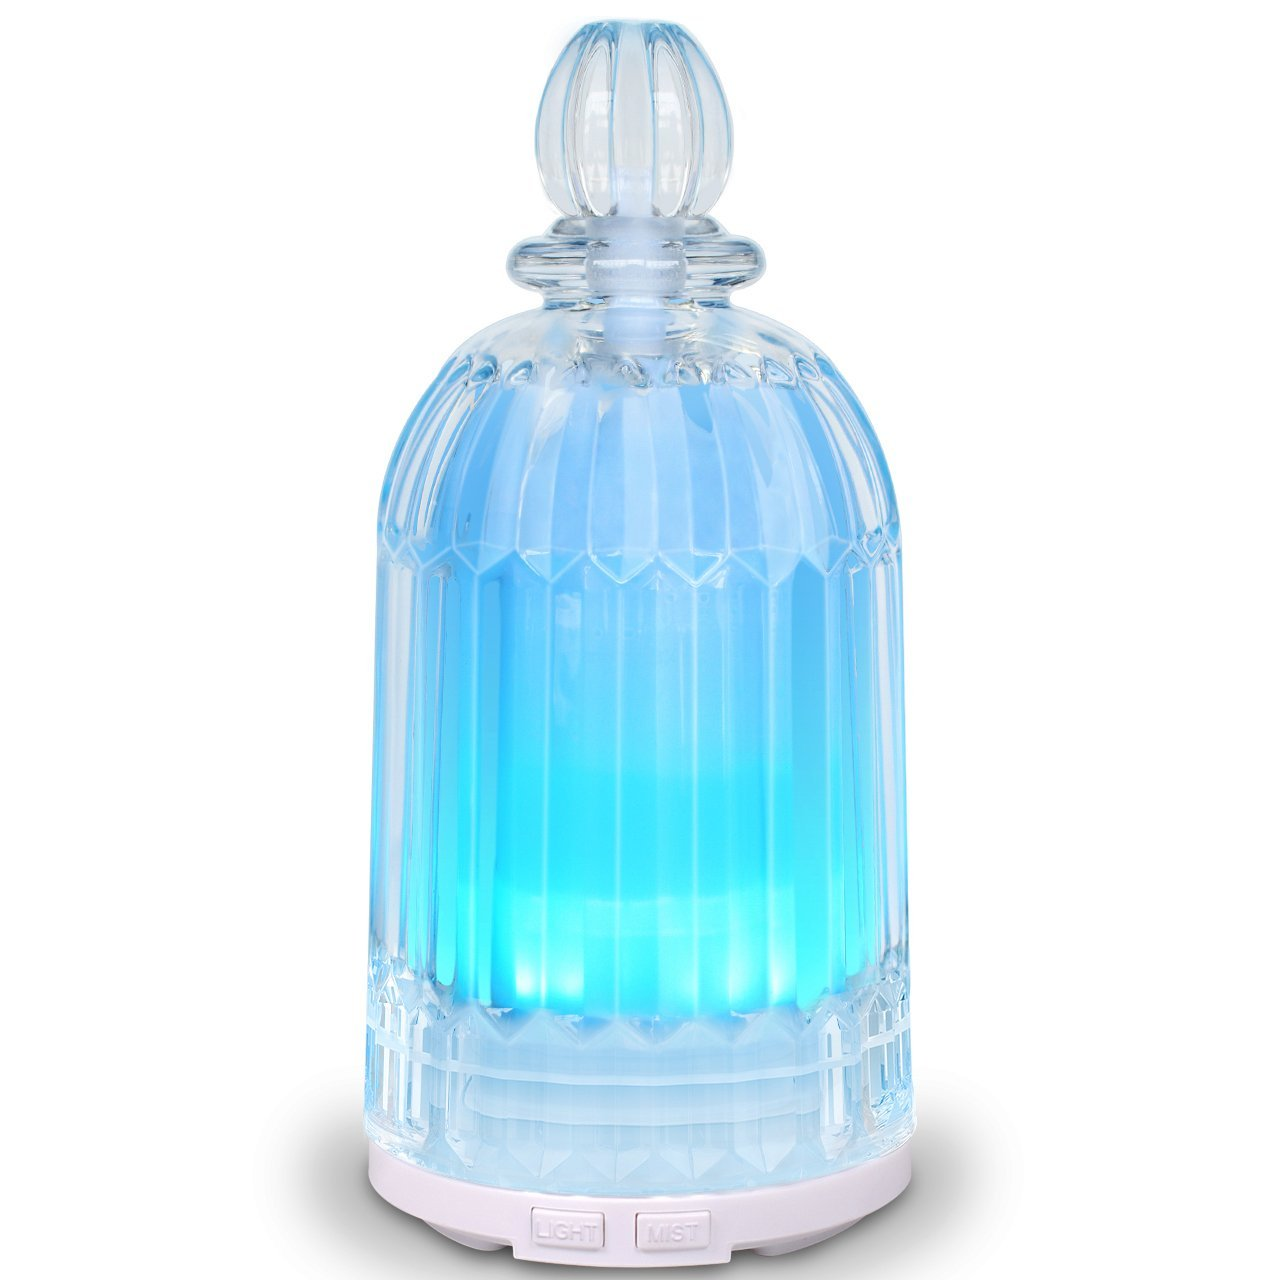 COSVII 120ML Glass Oil Diffuser Elegant Perfume Bottle Design, Ultrasonic Aromatherapy diffuser for Essential Oils, Quiet Cool Mist Humidifier with 7-color LED Lights &Auto Shut-Off Function